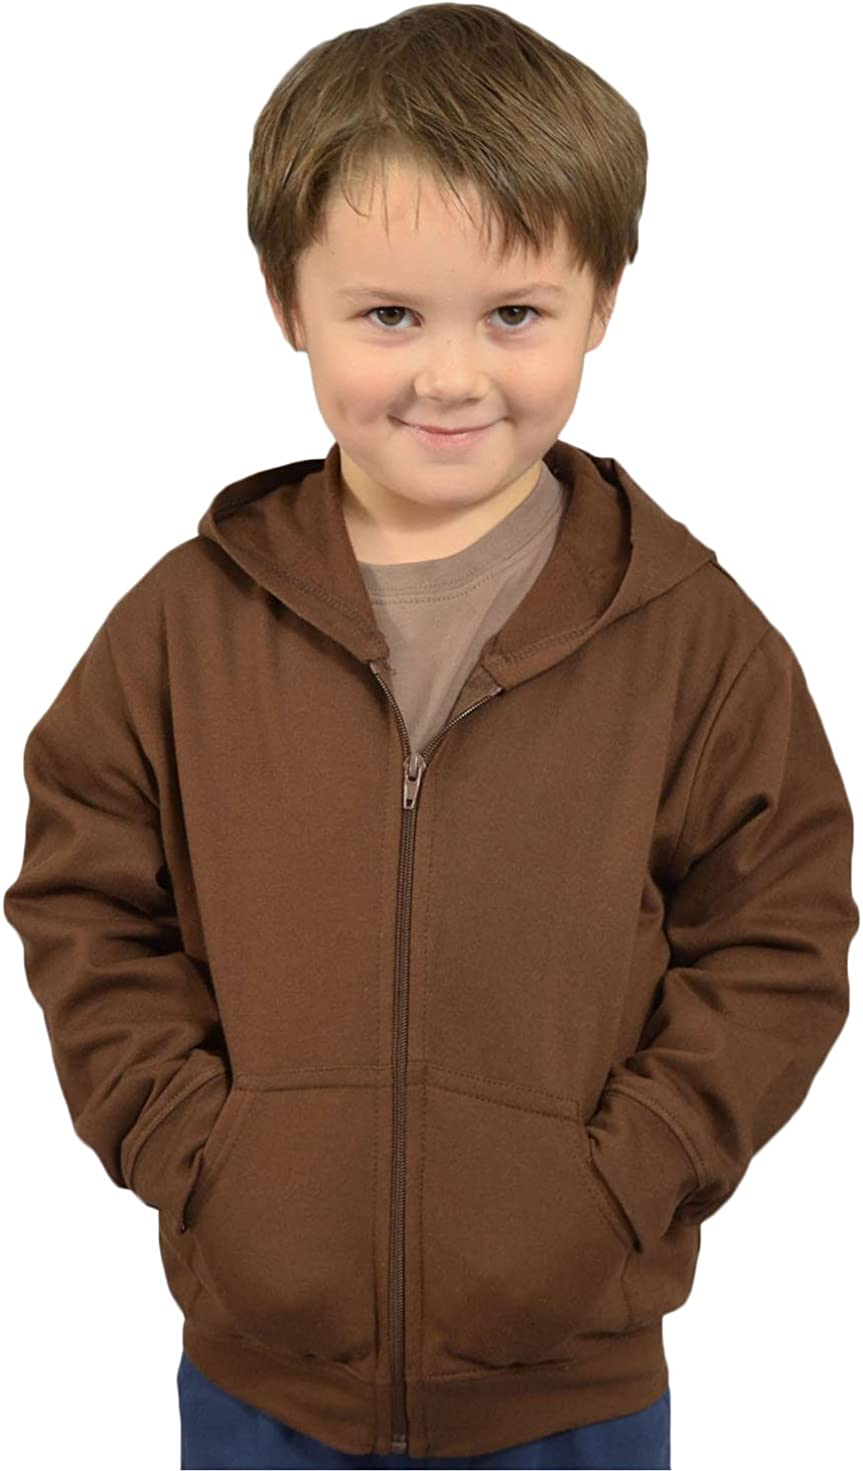 Monag Infant Fleece Jacket With Hoodi